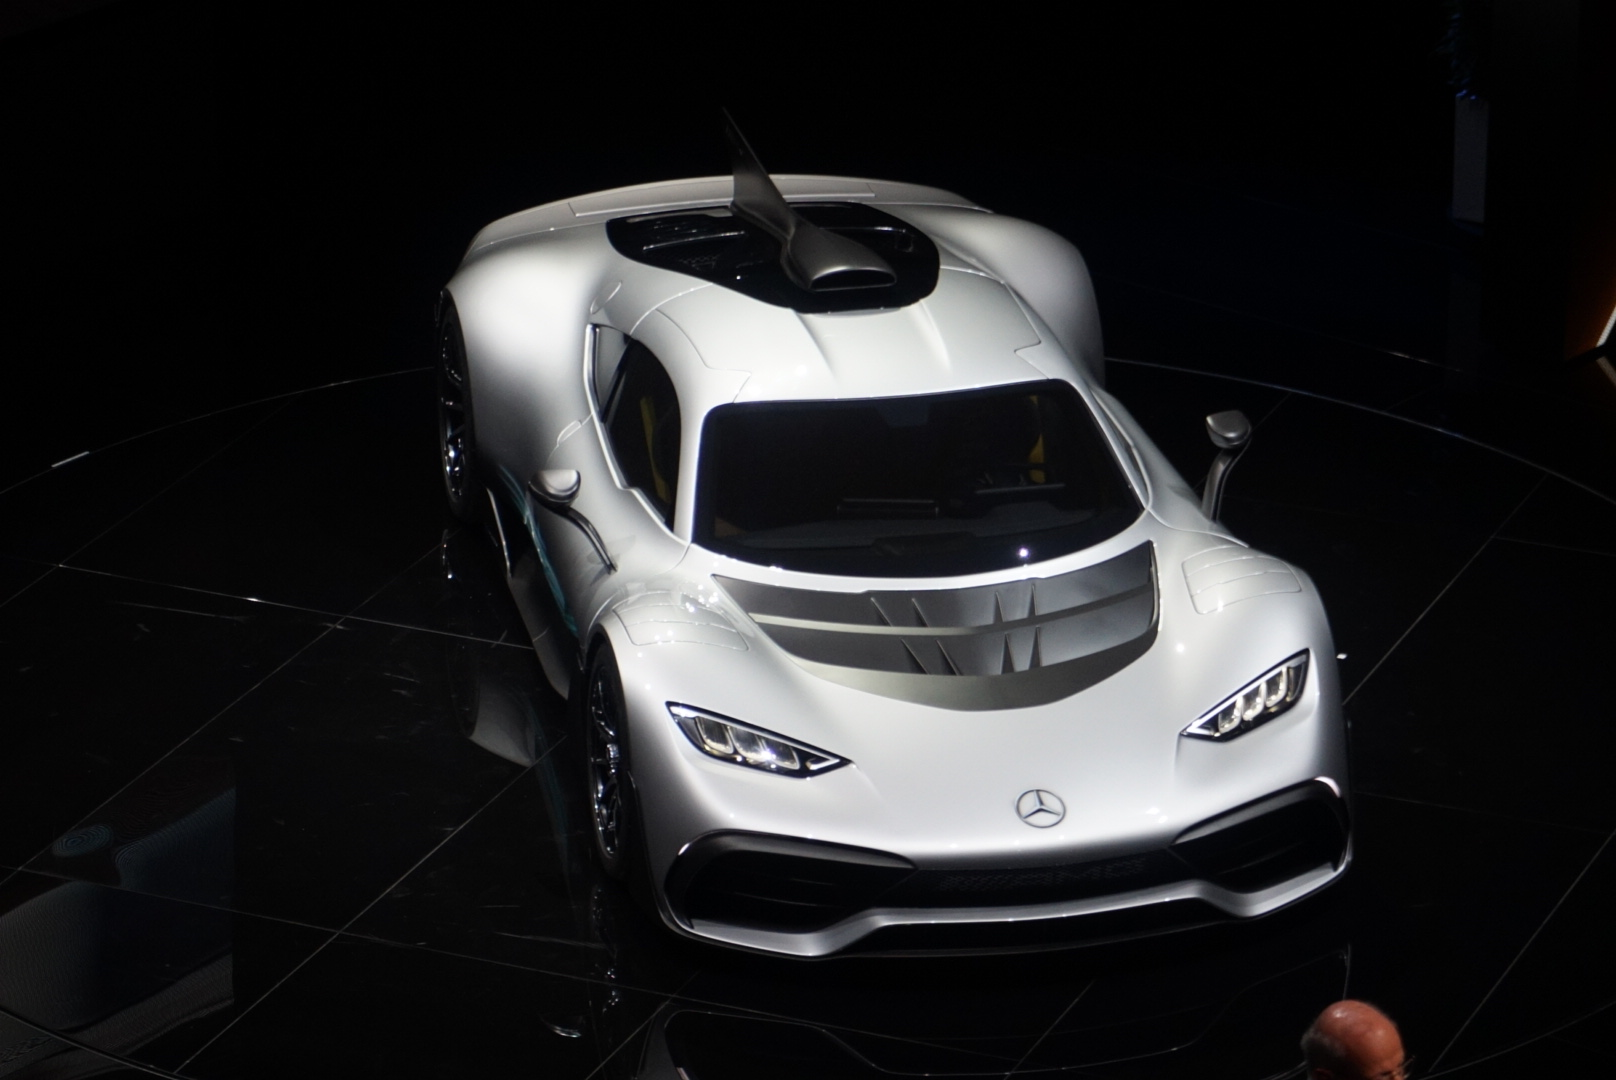 Mercedes-AMG reveals 1000bhp, 217mph 'Project One' road-legal F1 vehicle